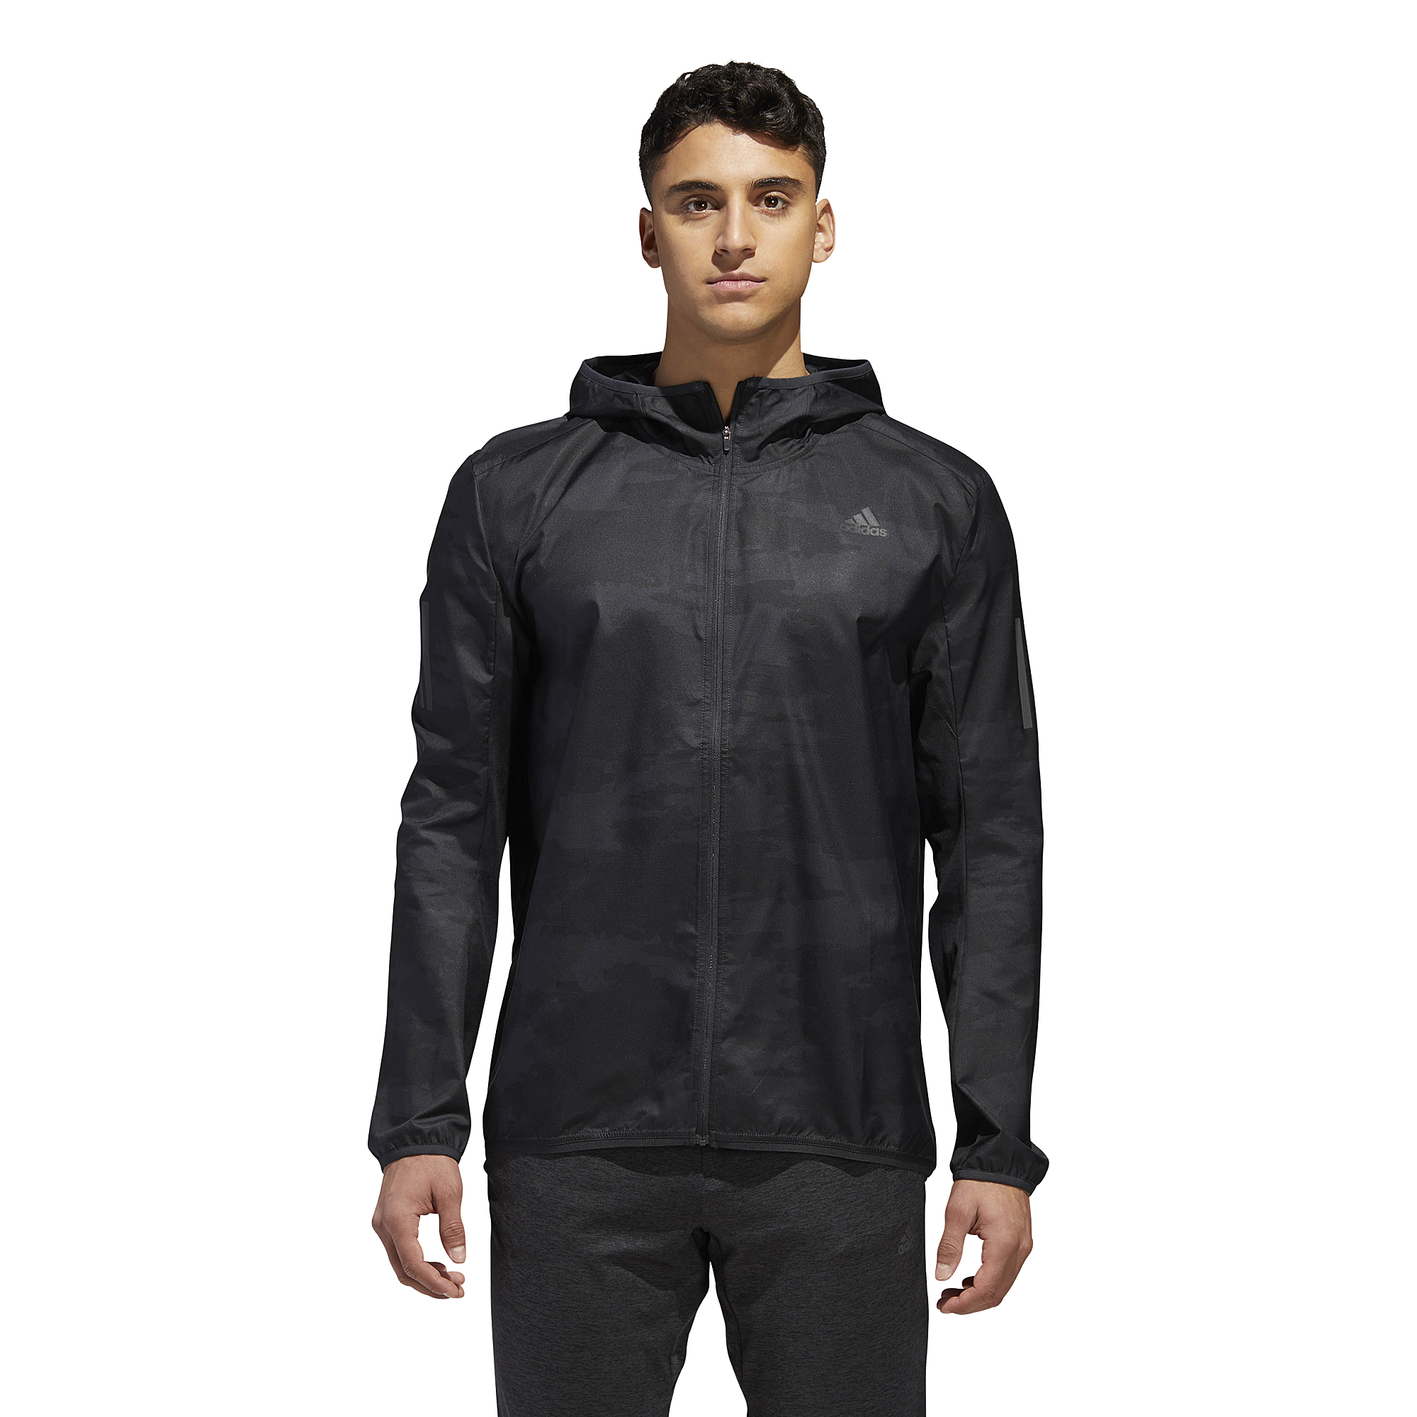 d7965a0b7 adidas Response Hooded Wind Jacket - Men's - Running - Clothing - Carbon